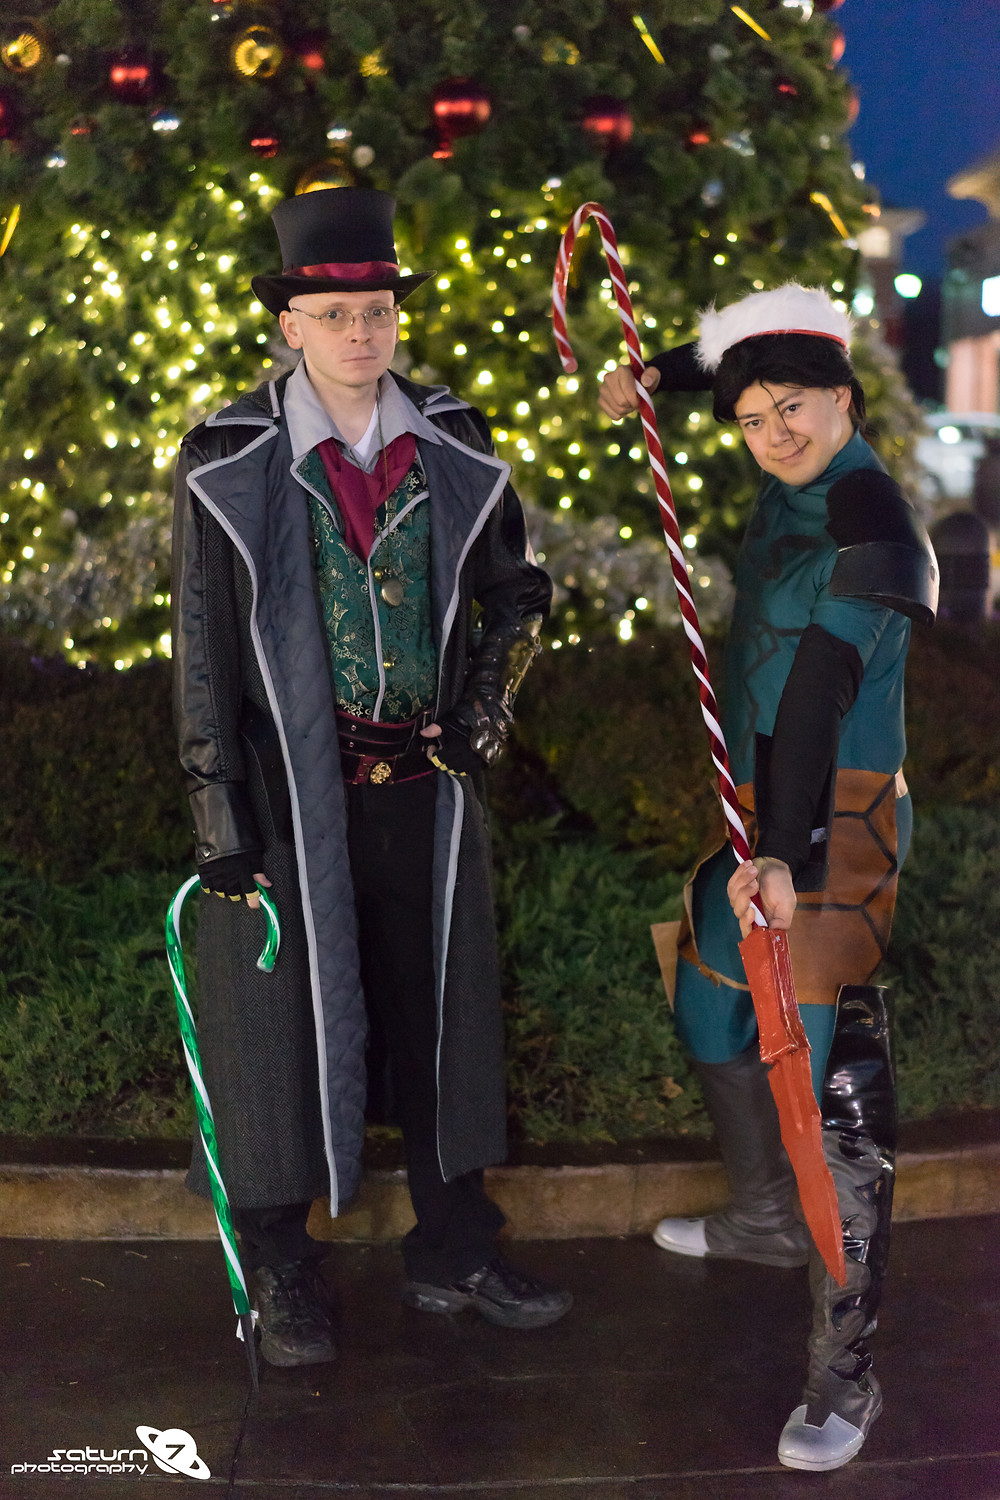 Two cosplayers dressed up in front of a glowing Christmas tree